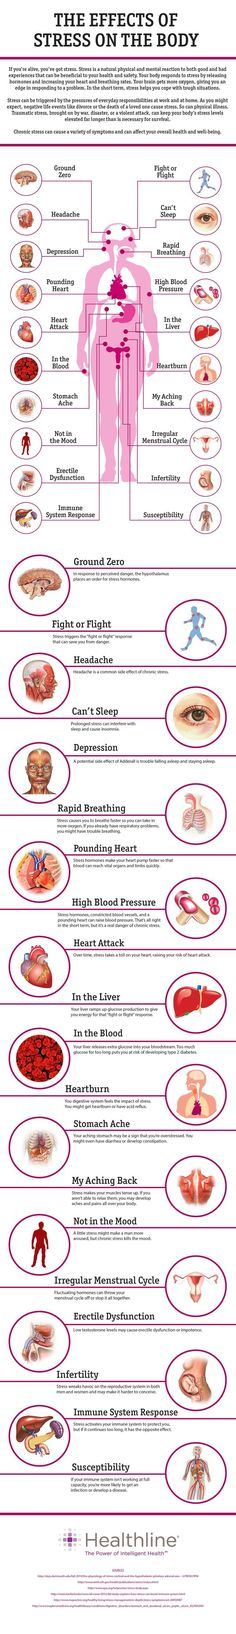 20 Effects Of Stress On The Body=> http://www.healthline.com/health/stress/effects-on-body #stress: #HomeMadeColonCleanseDiet